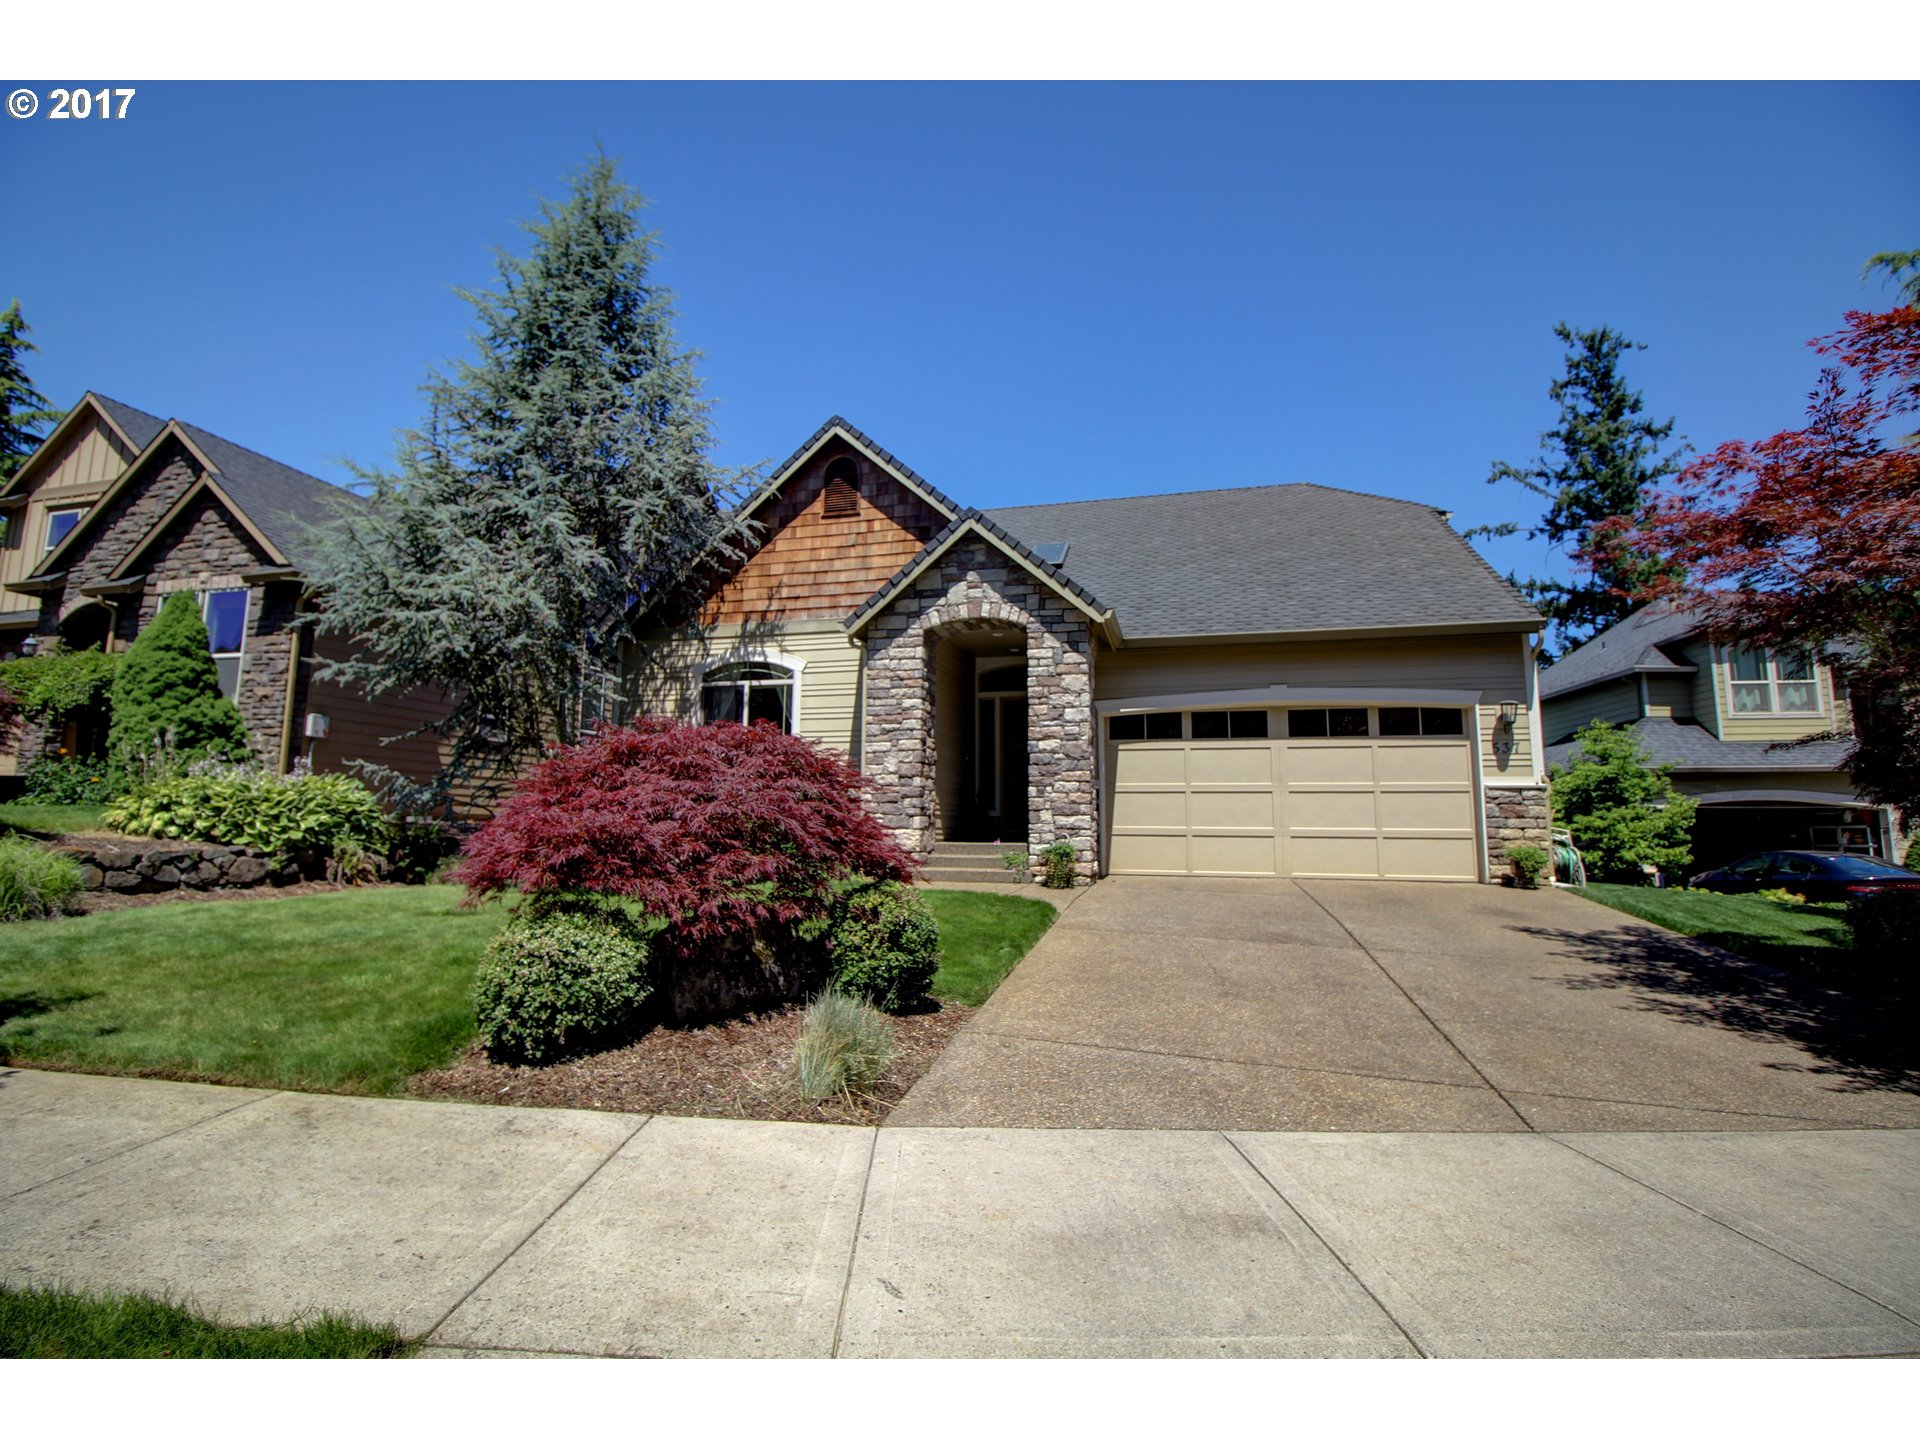 Immaculate dayranch in perfect cul-de-sac location. You'll love the great room style with high and vaulted ceilings and soaring windows looking at territorial views. Beautiful kitchen with hardwood, granite, large island, pantry and gas cooking. Main floor spacious master suite with walk-in closet, double sinks and jetted tub. There are two gas fireplaces, bonus room, skylight, sprinkler system and more plus great Camas schools.